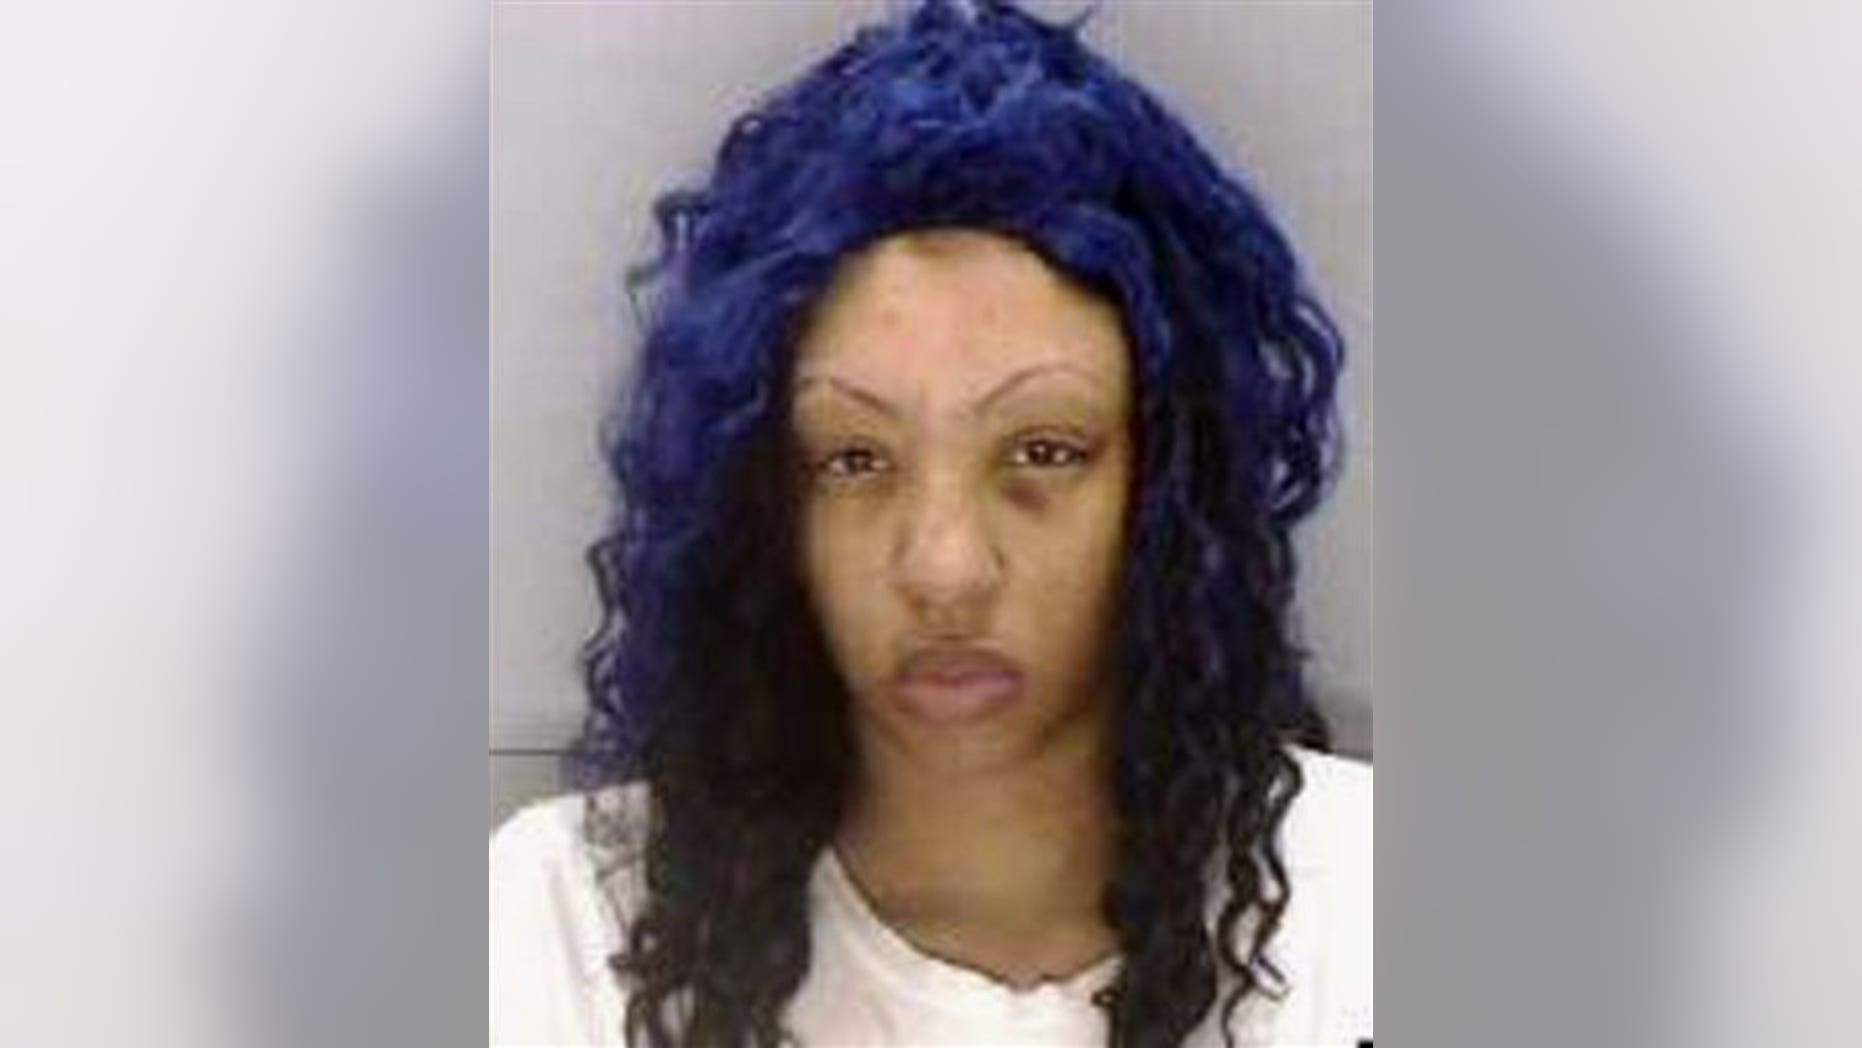 Undated photo of Zinah Jennings. Columbia police are in a desperate search for Jennings' 18-month-old son after she refused to tell them of his whereabouts.